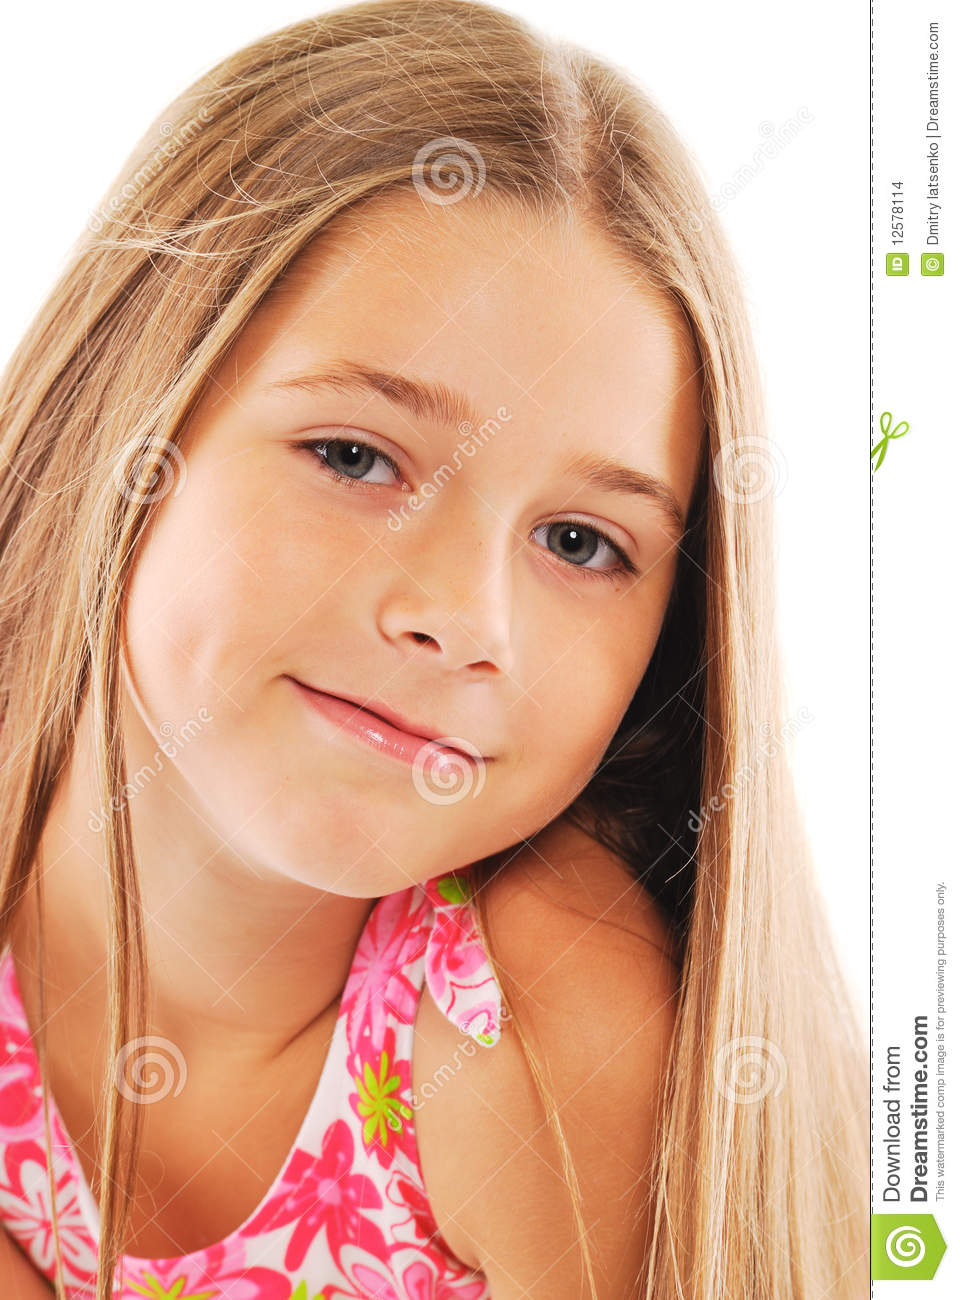 Portrait of little blond girl with long hair on white background.